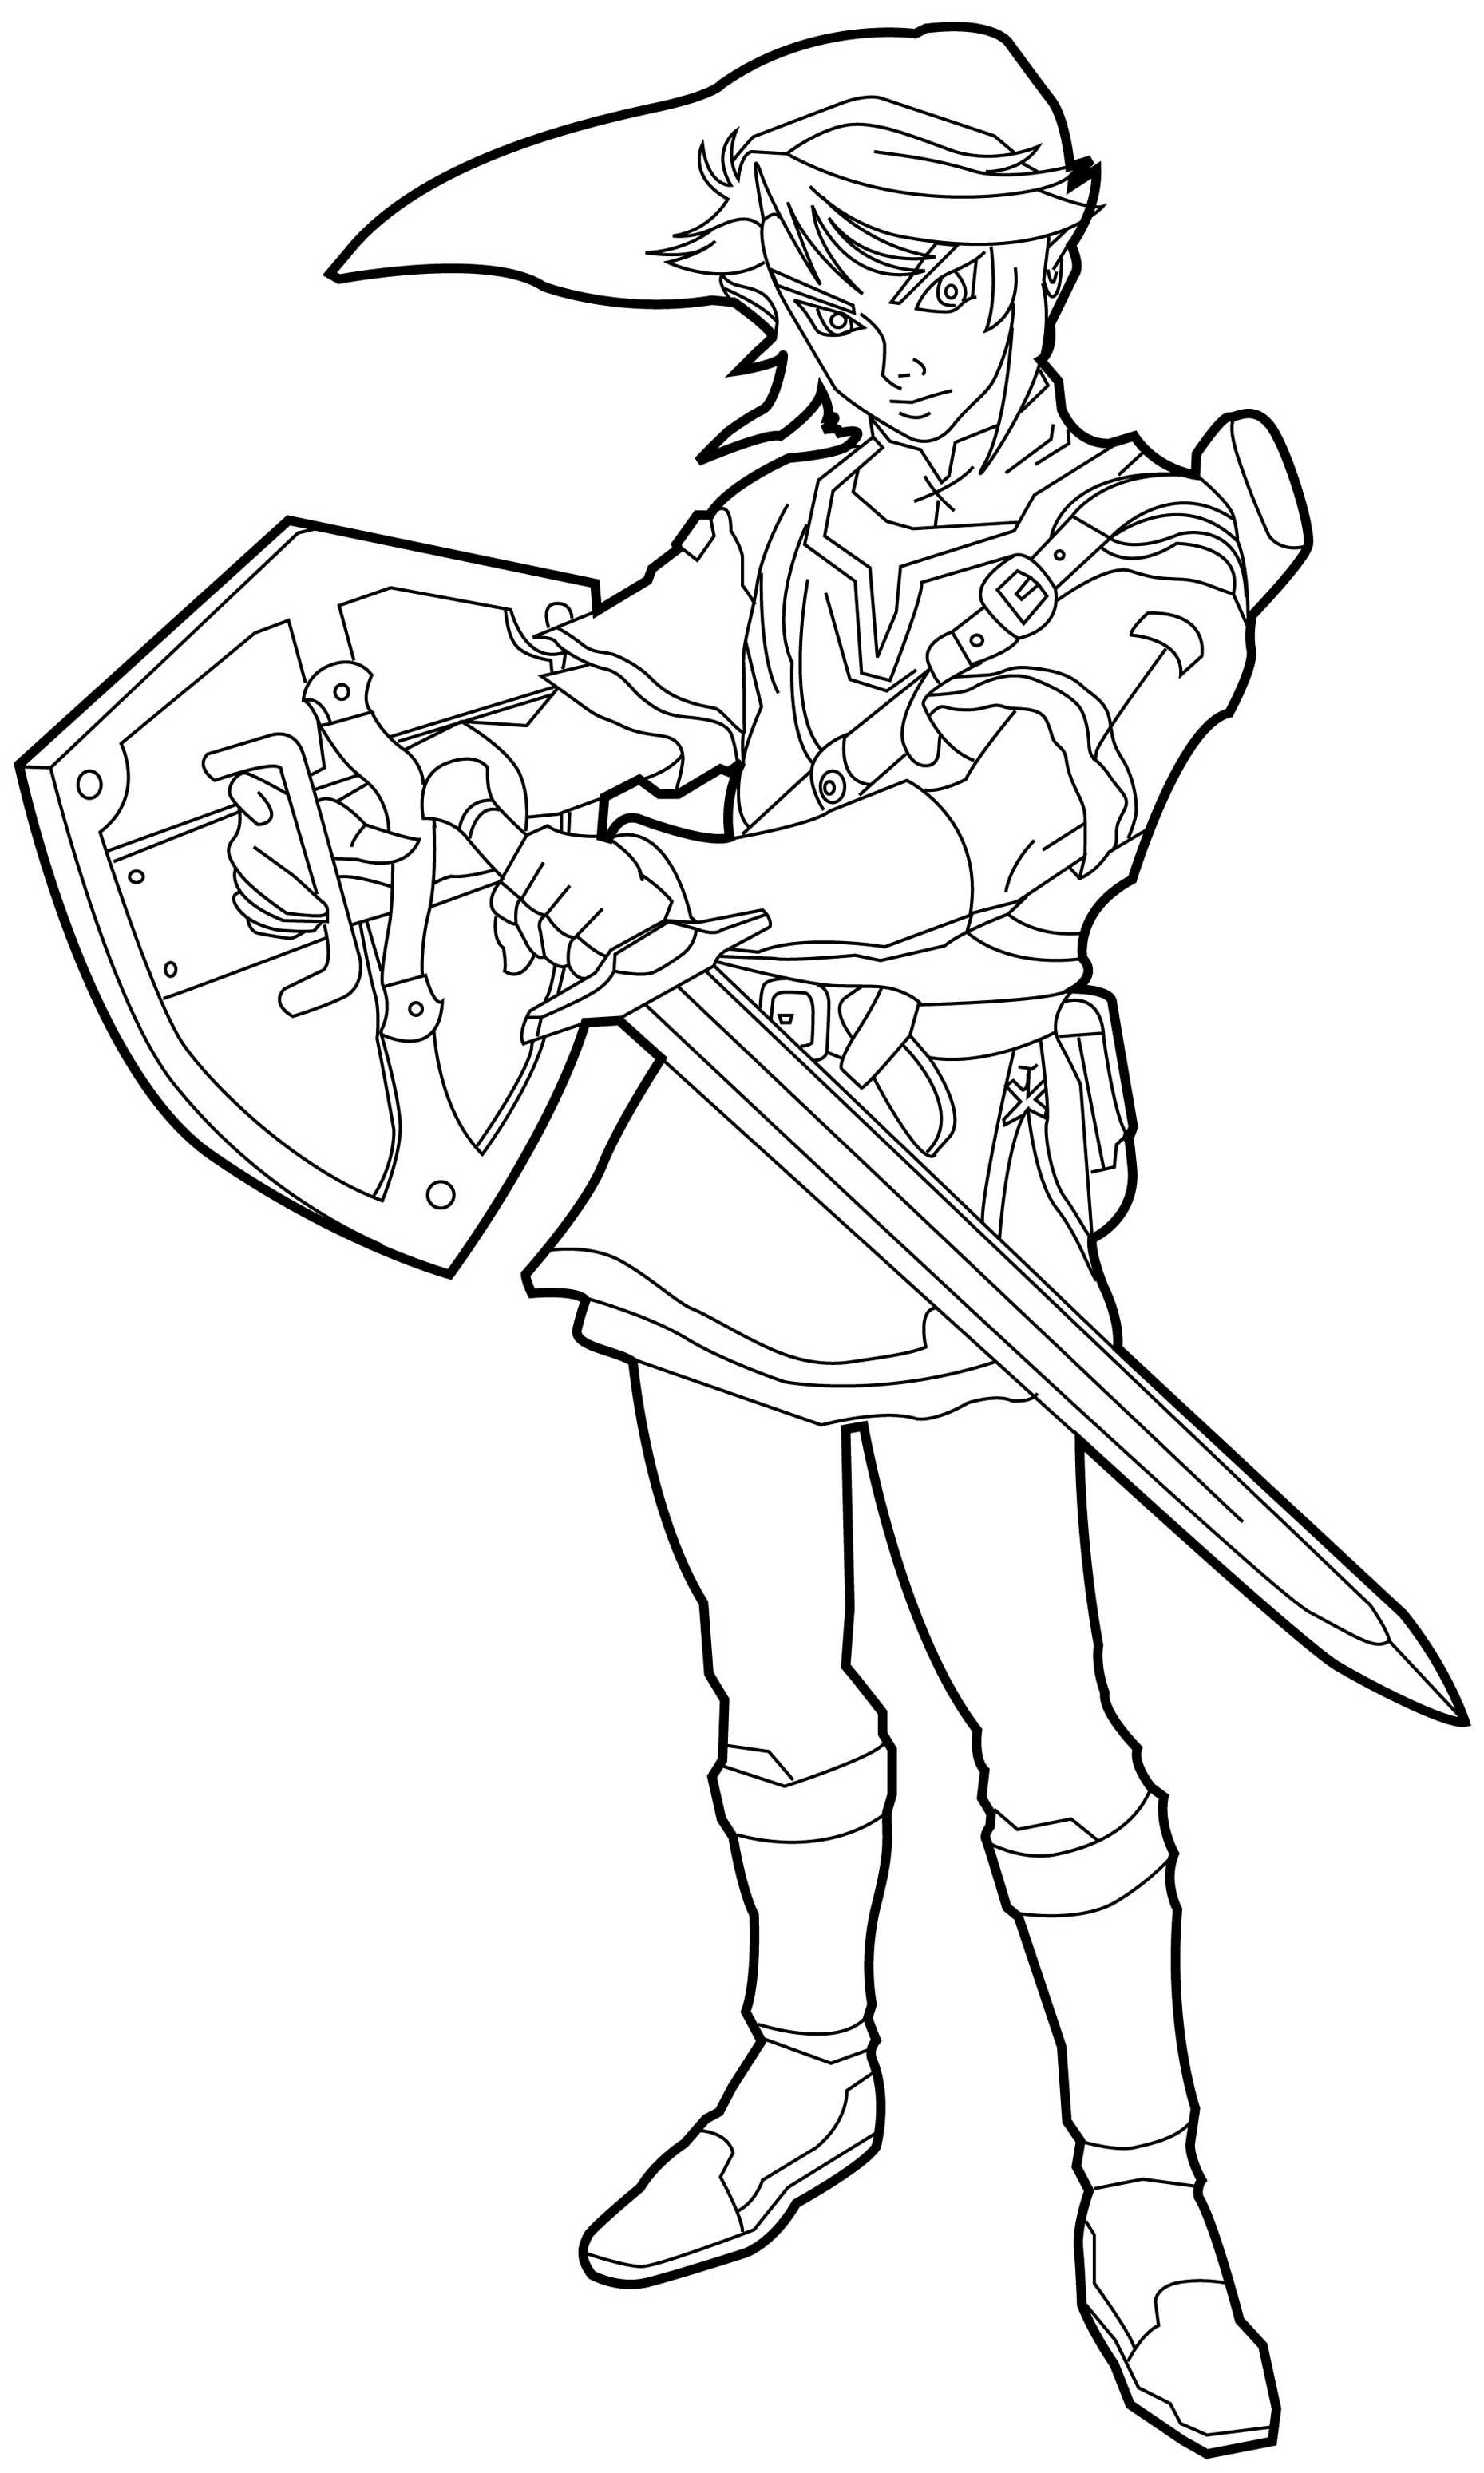 Zelda twilight princess coloring pages - Free Zelda Coloring Pages